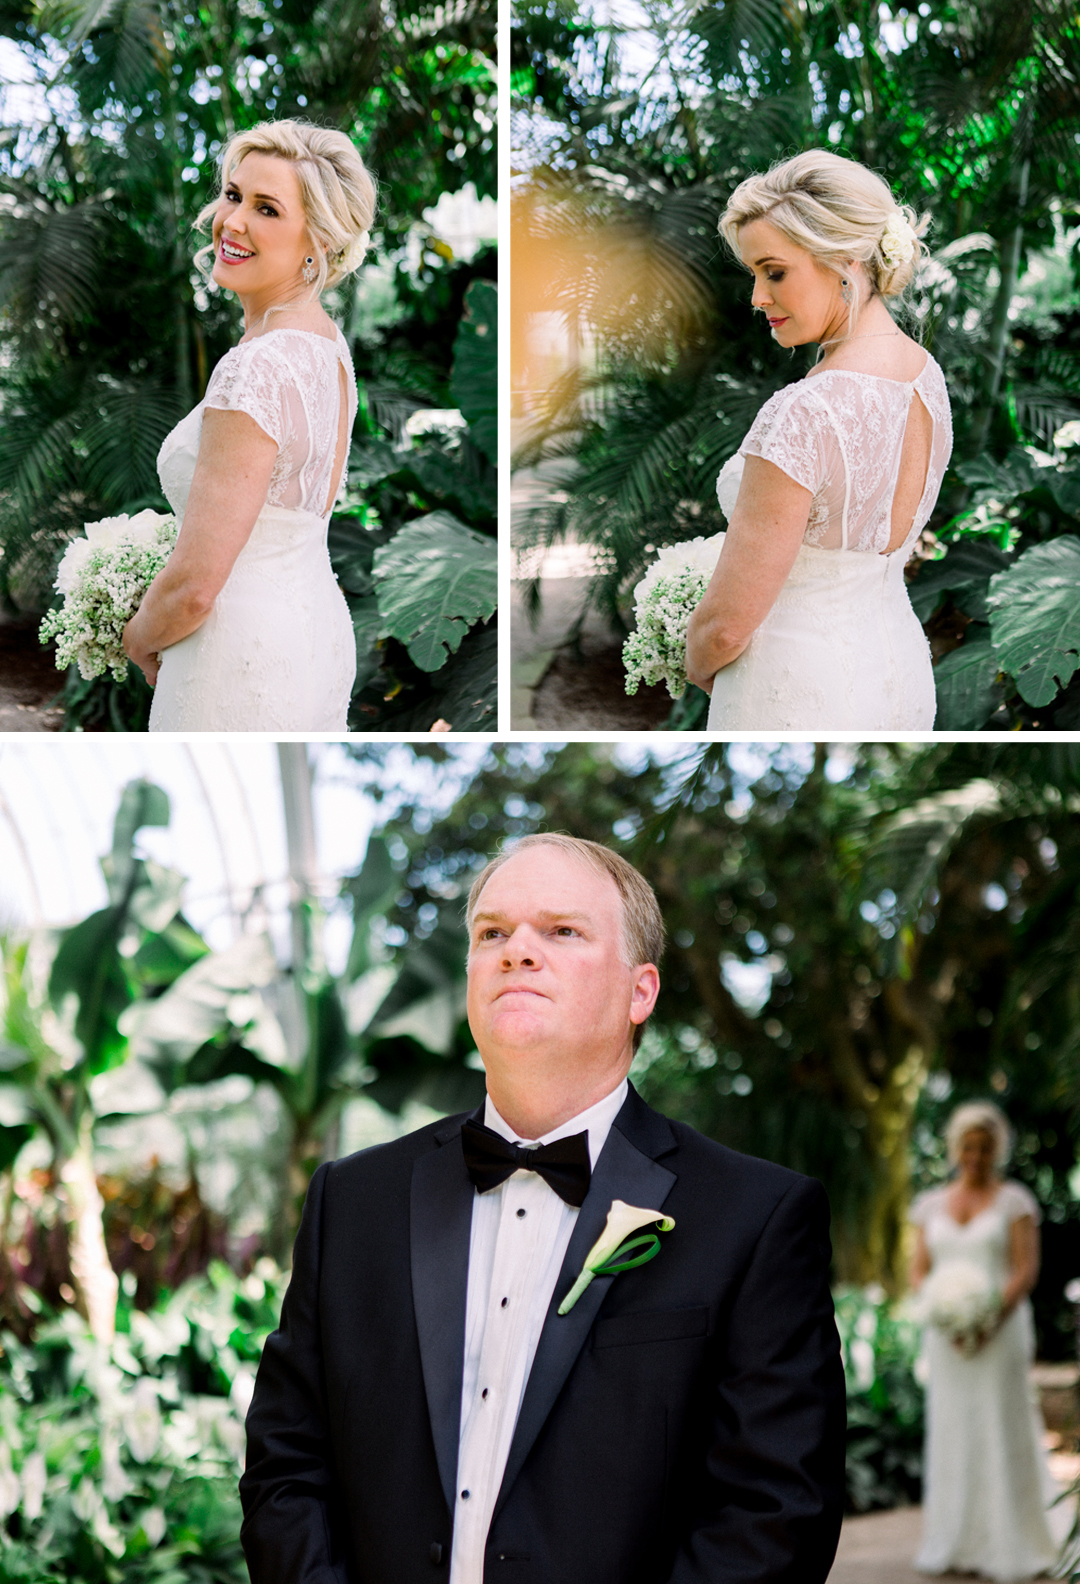 Margie_John_Wedding_Mo_Davis_Photography4.jpg